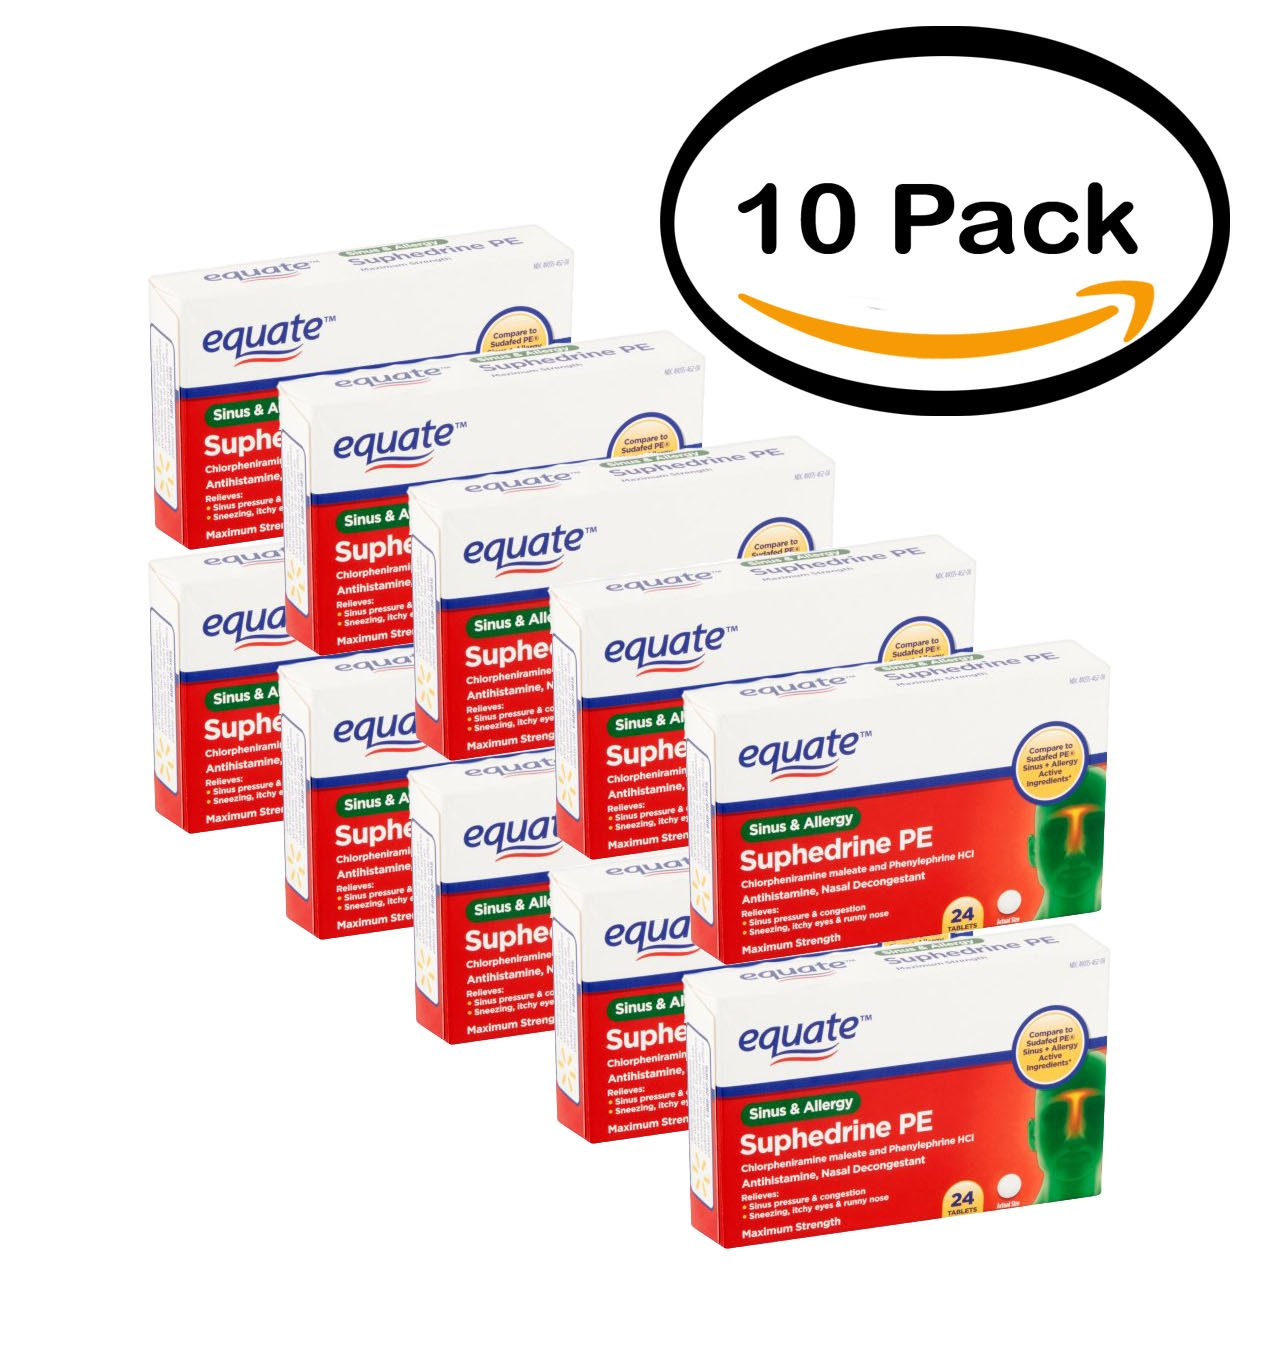 PACK OF 10 - Equate: Suphedrine PE Sinus & Allergy Tablets Antihistamine/Nasal Decongestant, (24 Ct/Pck) by Equate